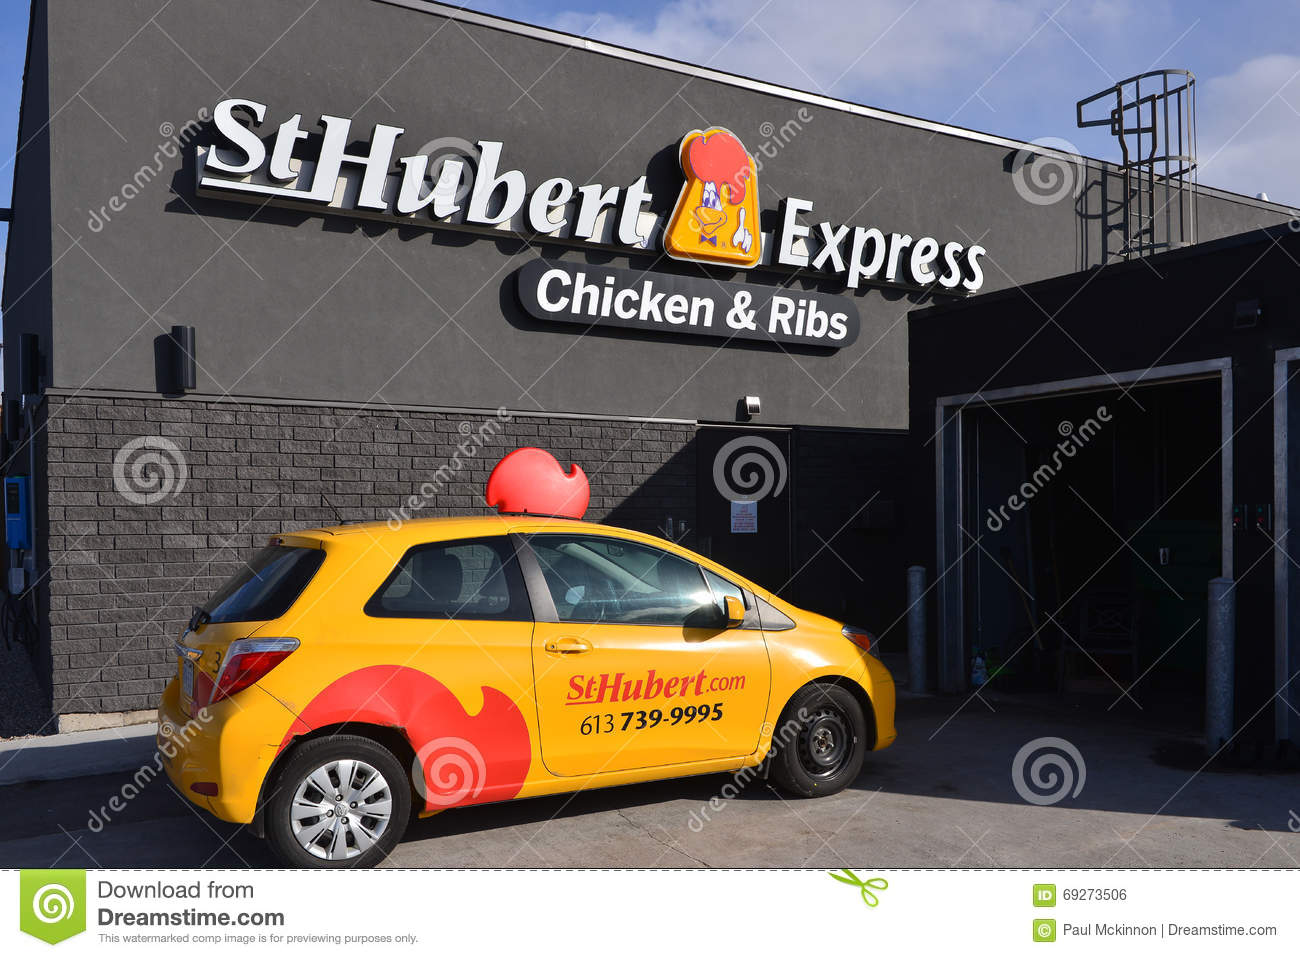 St Hubert store and delivery car